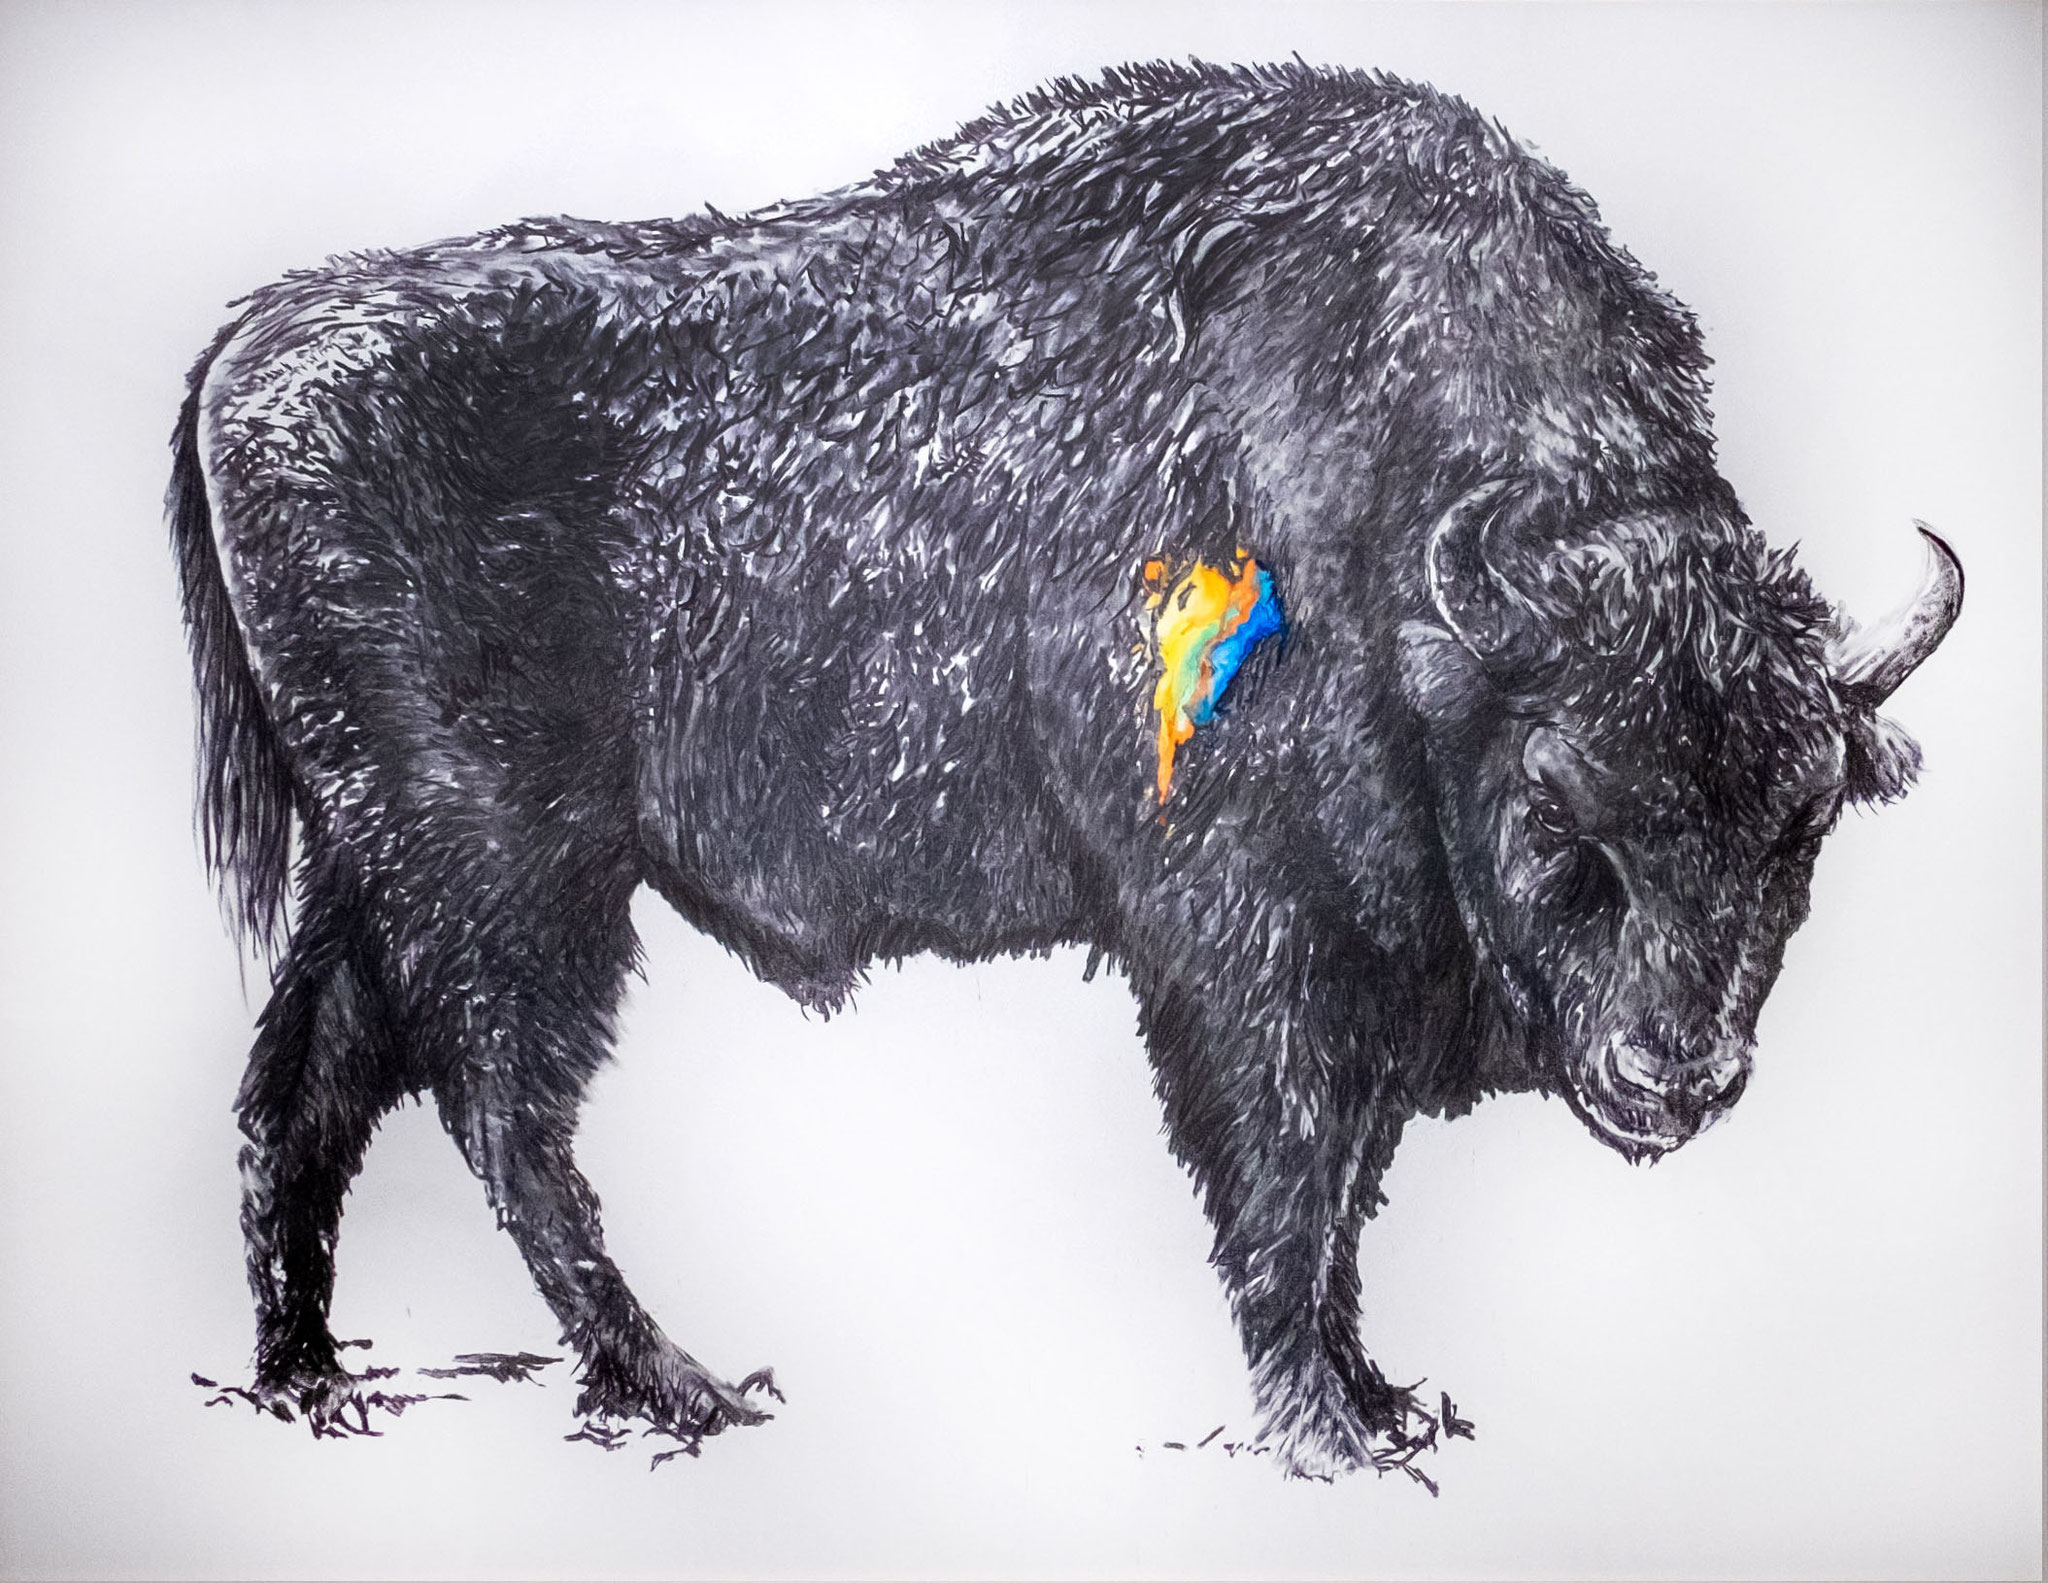 Wisent 140x180cm charcoal, watercolor 2021